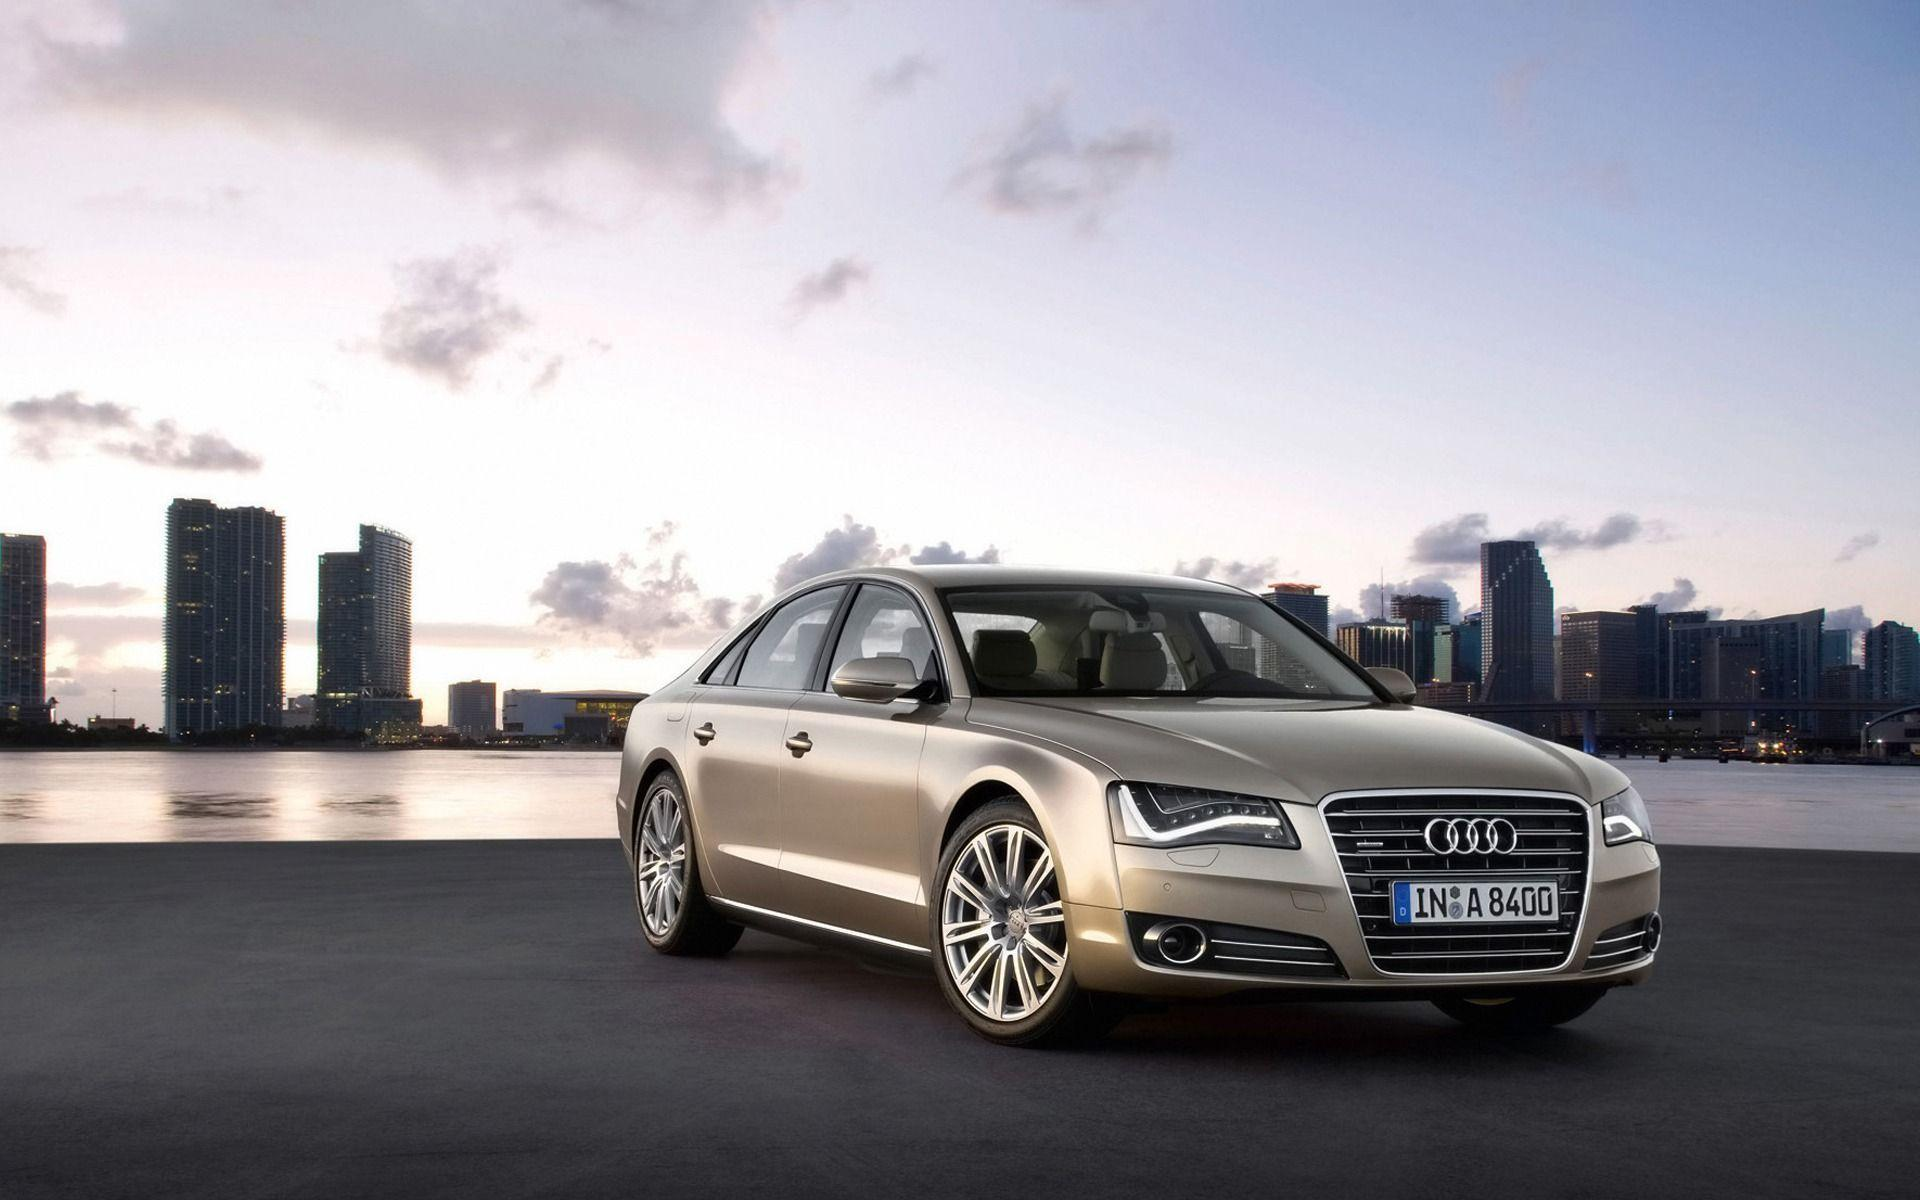 Audi A8 Wallpapers Audi Cars Wallpapers in jpg format for free download